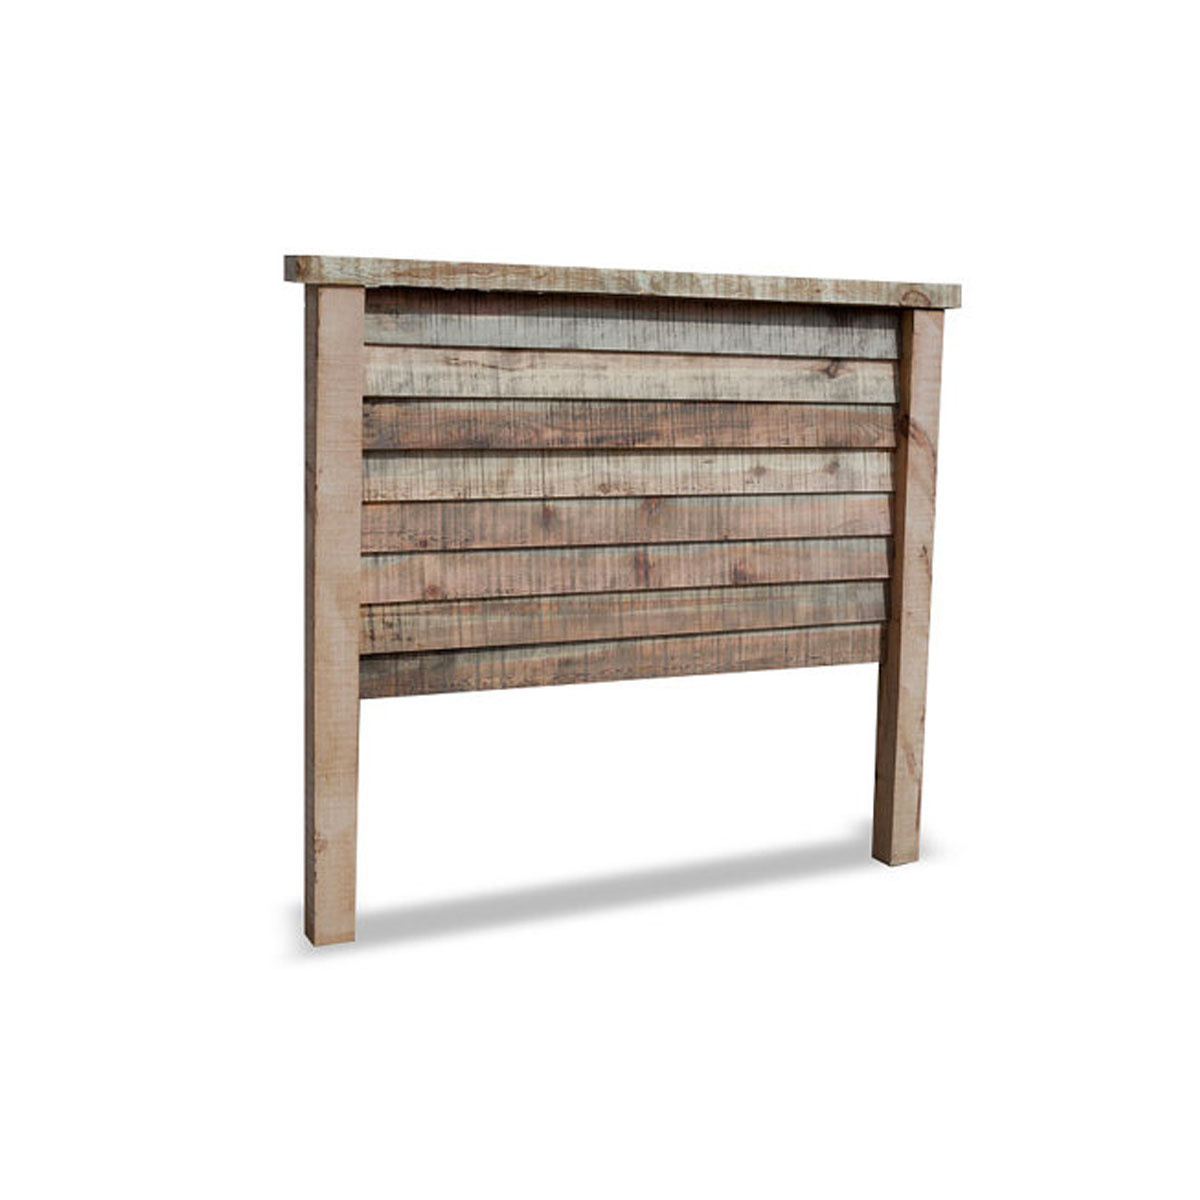 Purchase natural barnwood bed online rustic headboard for Furniture purchase